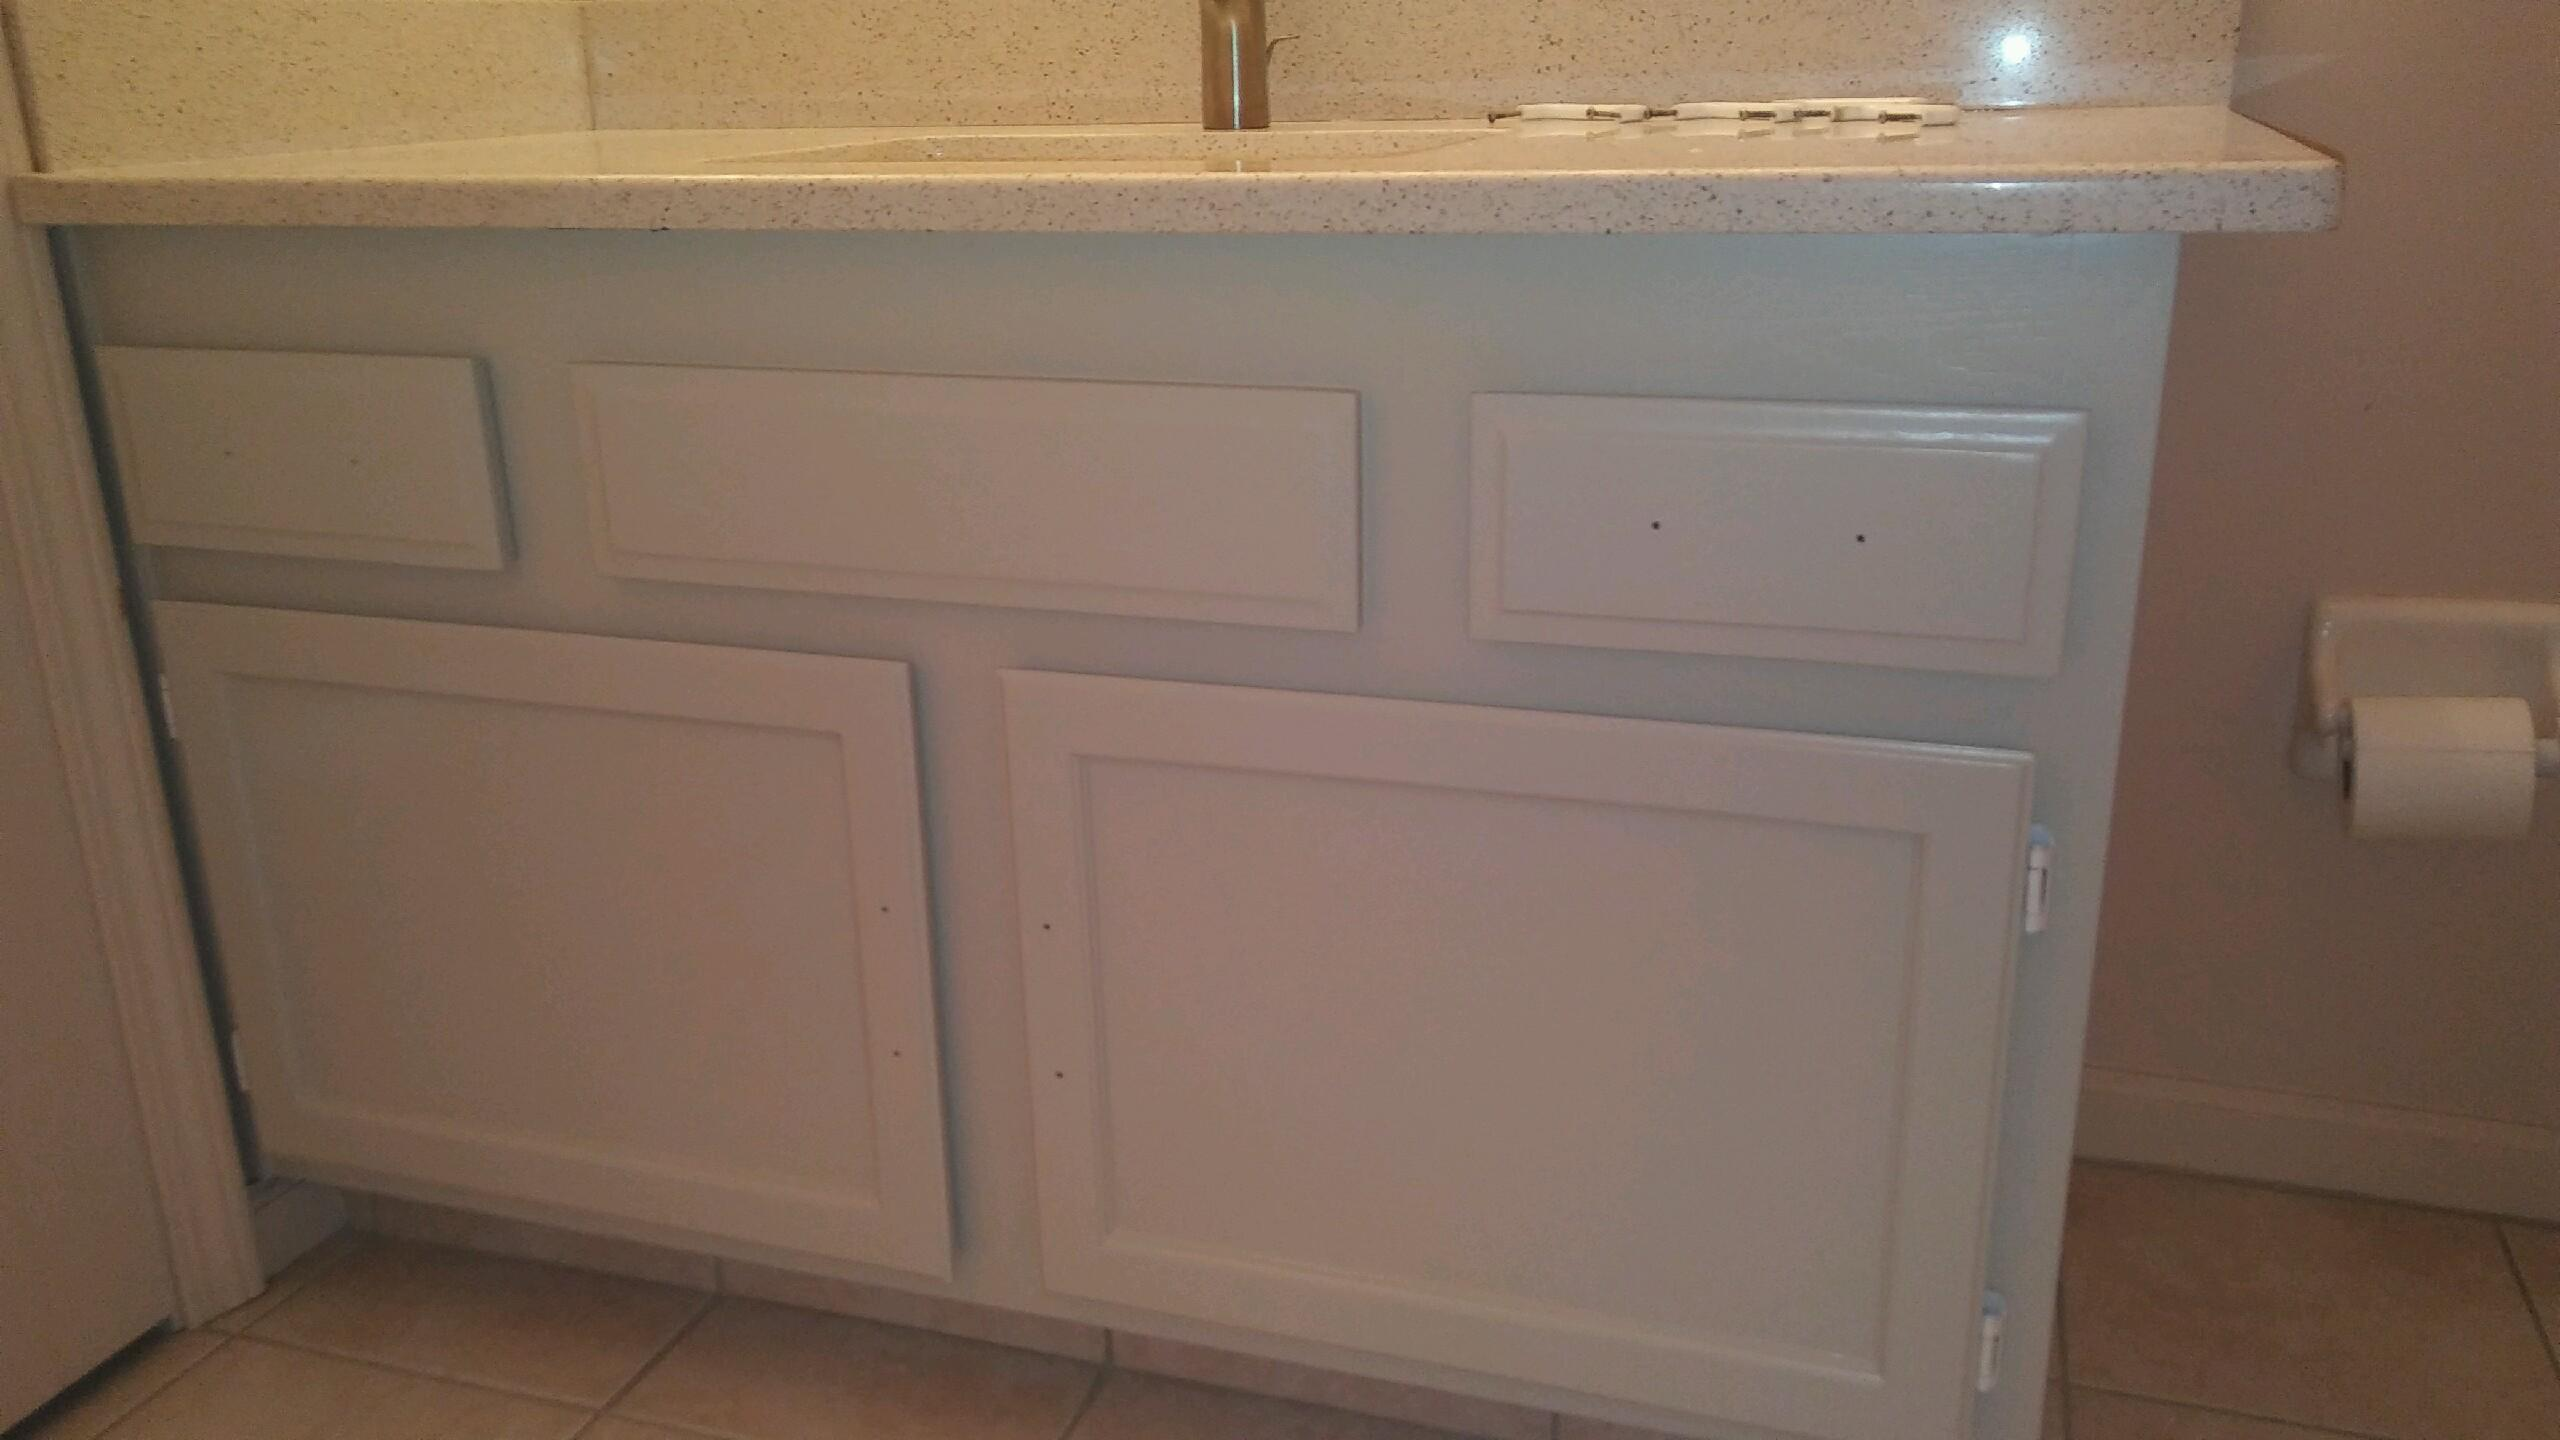 Filed Under: Bathroom Remodel, Cabinet Painting, Painting By AAA  Residential Rehab Monday, March 13th, 2017